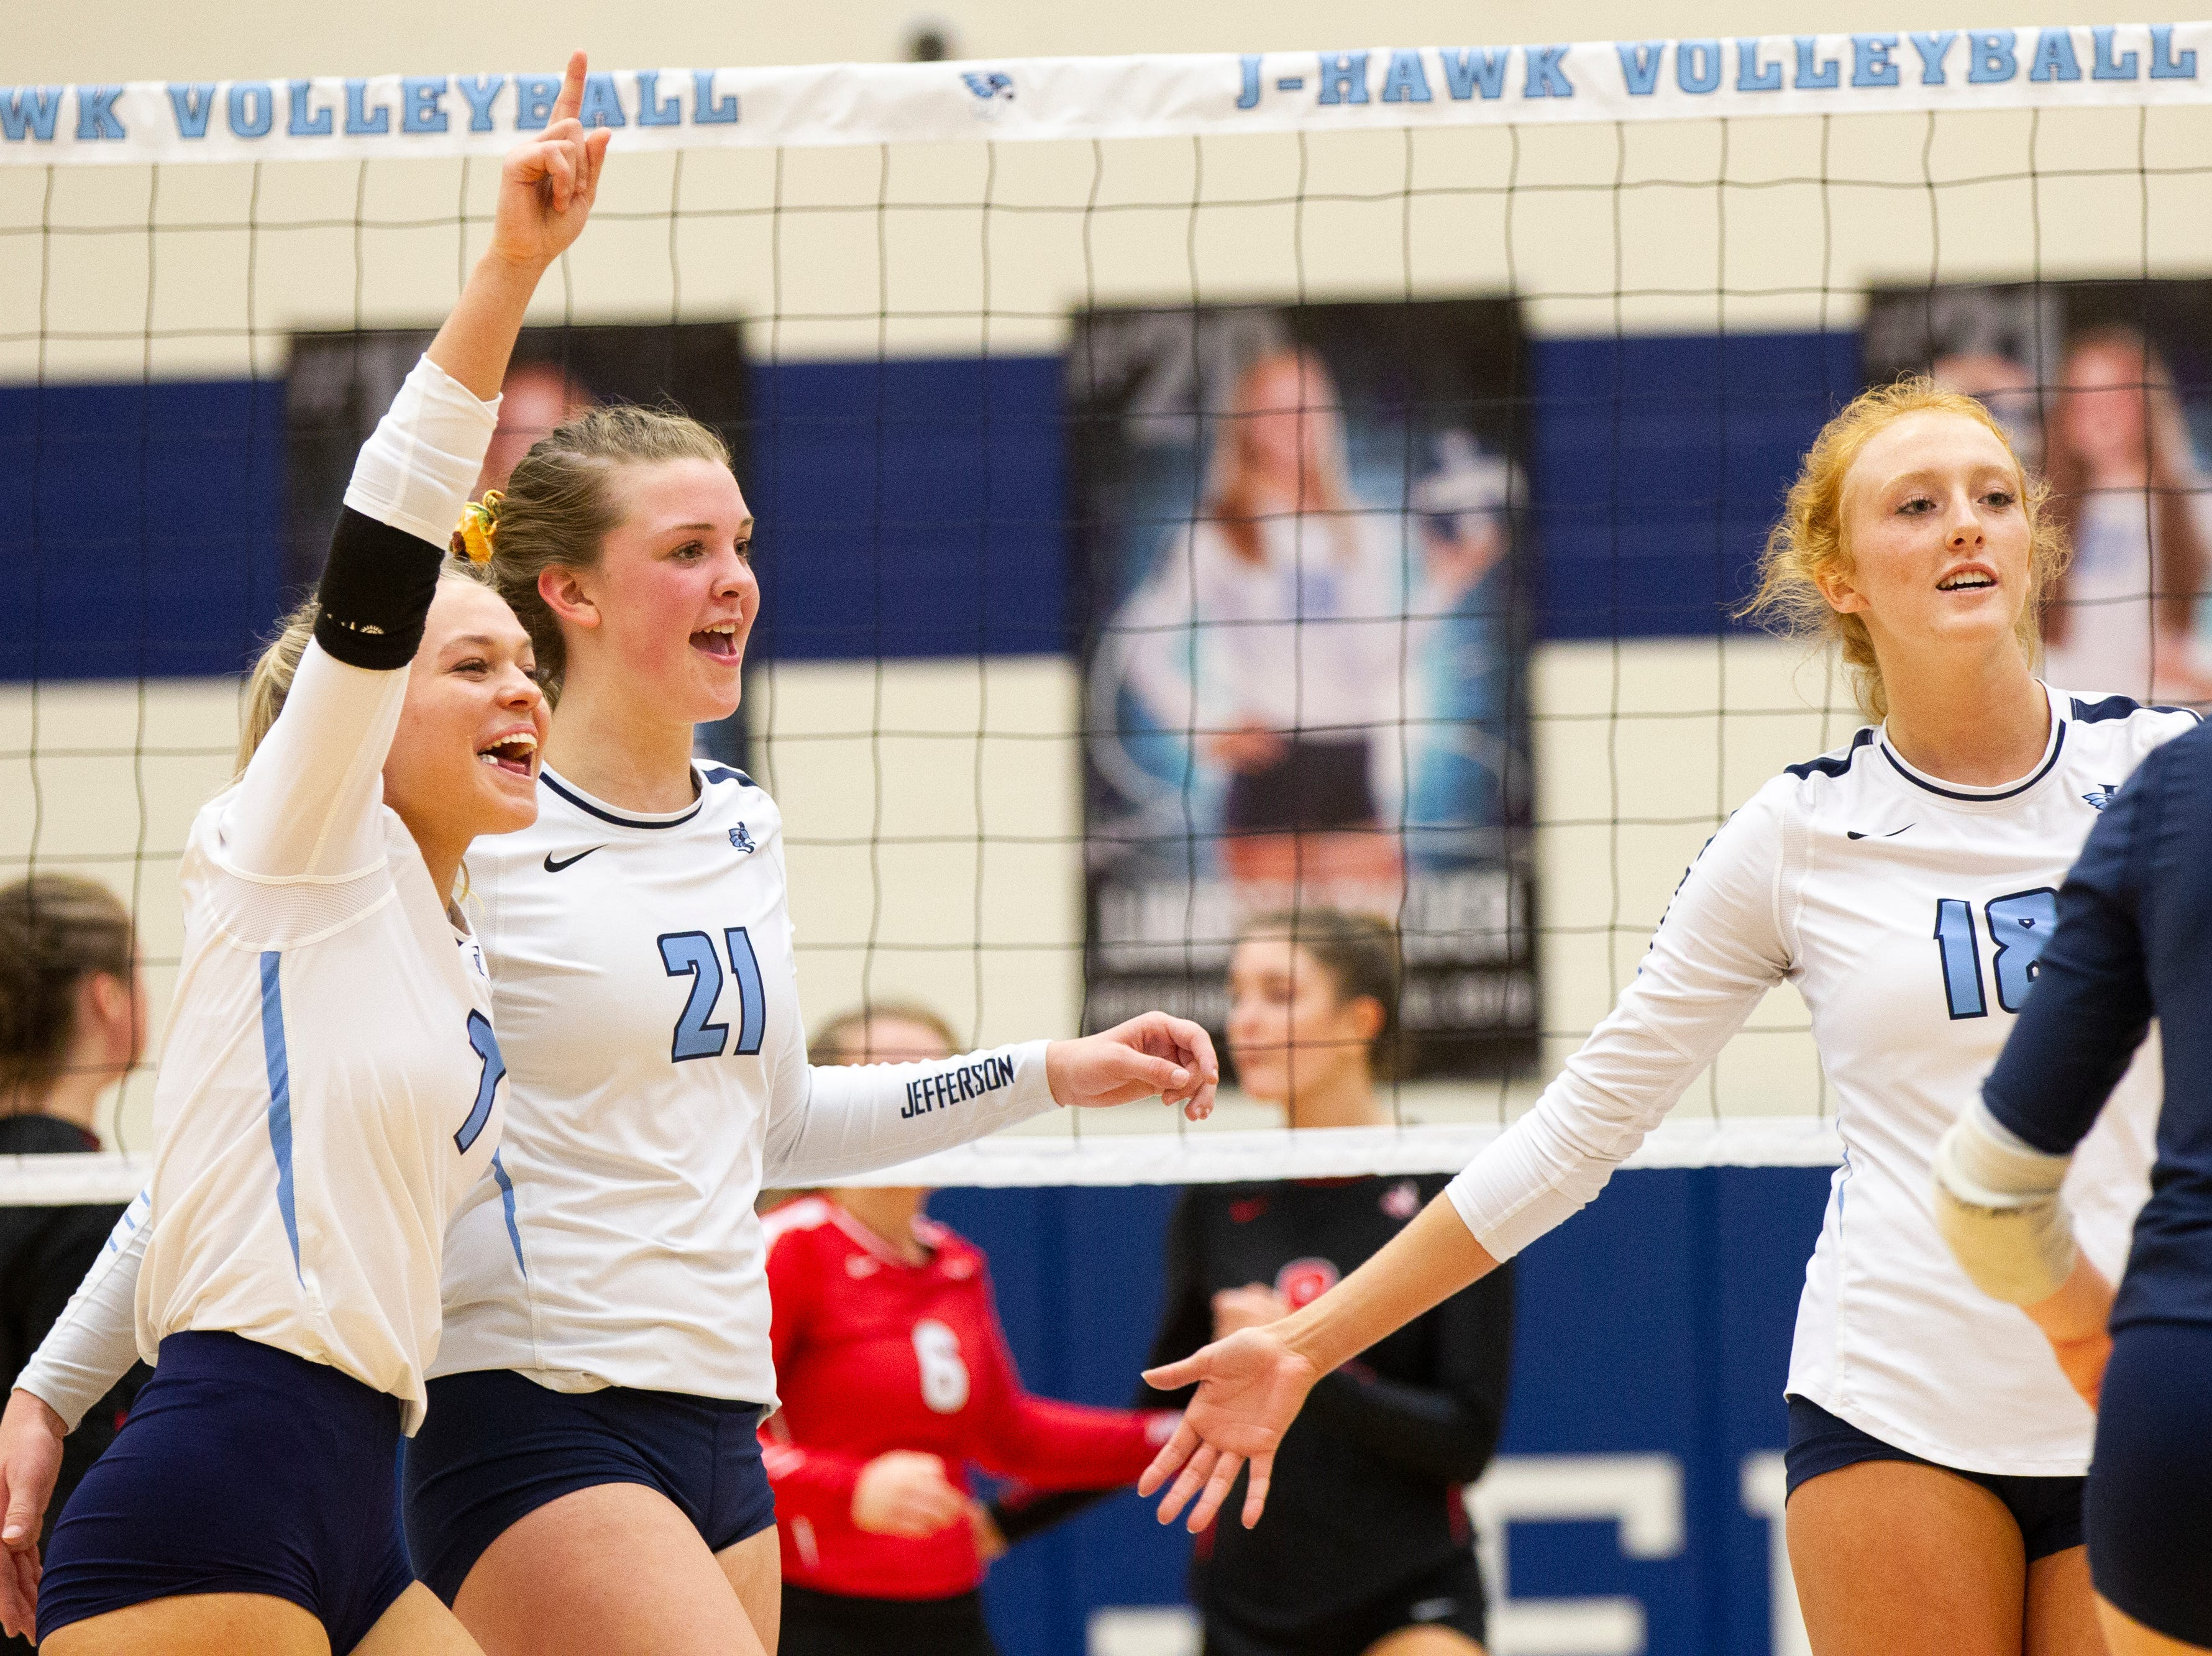 Cedar Rapids Jefferson's Allie Krousie (7) Sydney Kloubec (21) and Maggie Peters (18) celebrate a point during a Class 5A volleyball regional final game on Monday, Oct. 29, 2018, at Jefferson High School in Cedar Rapids.